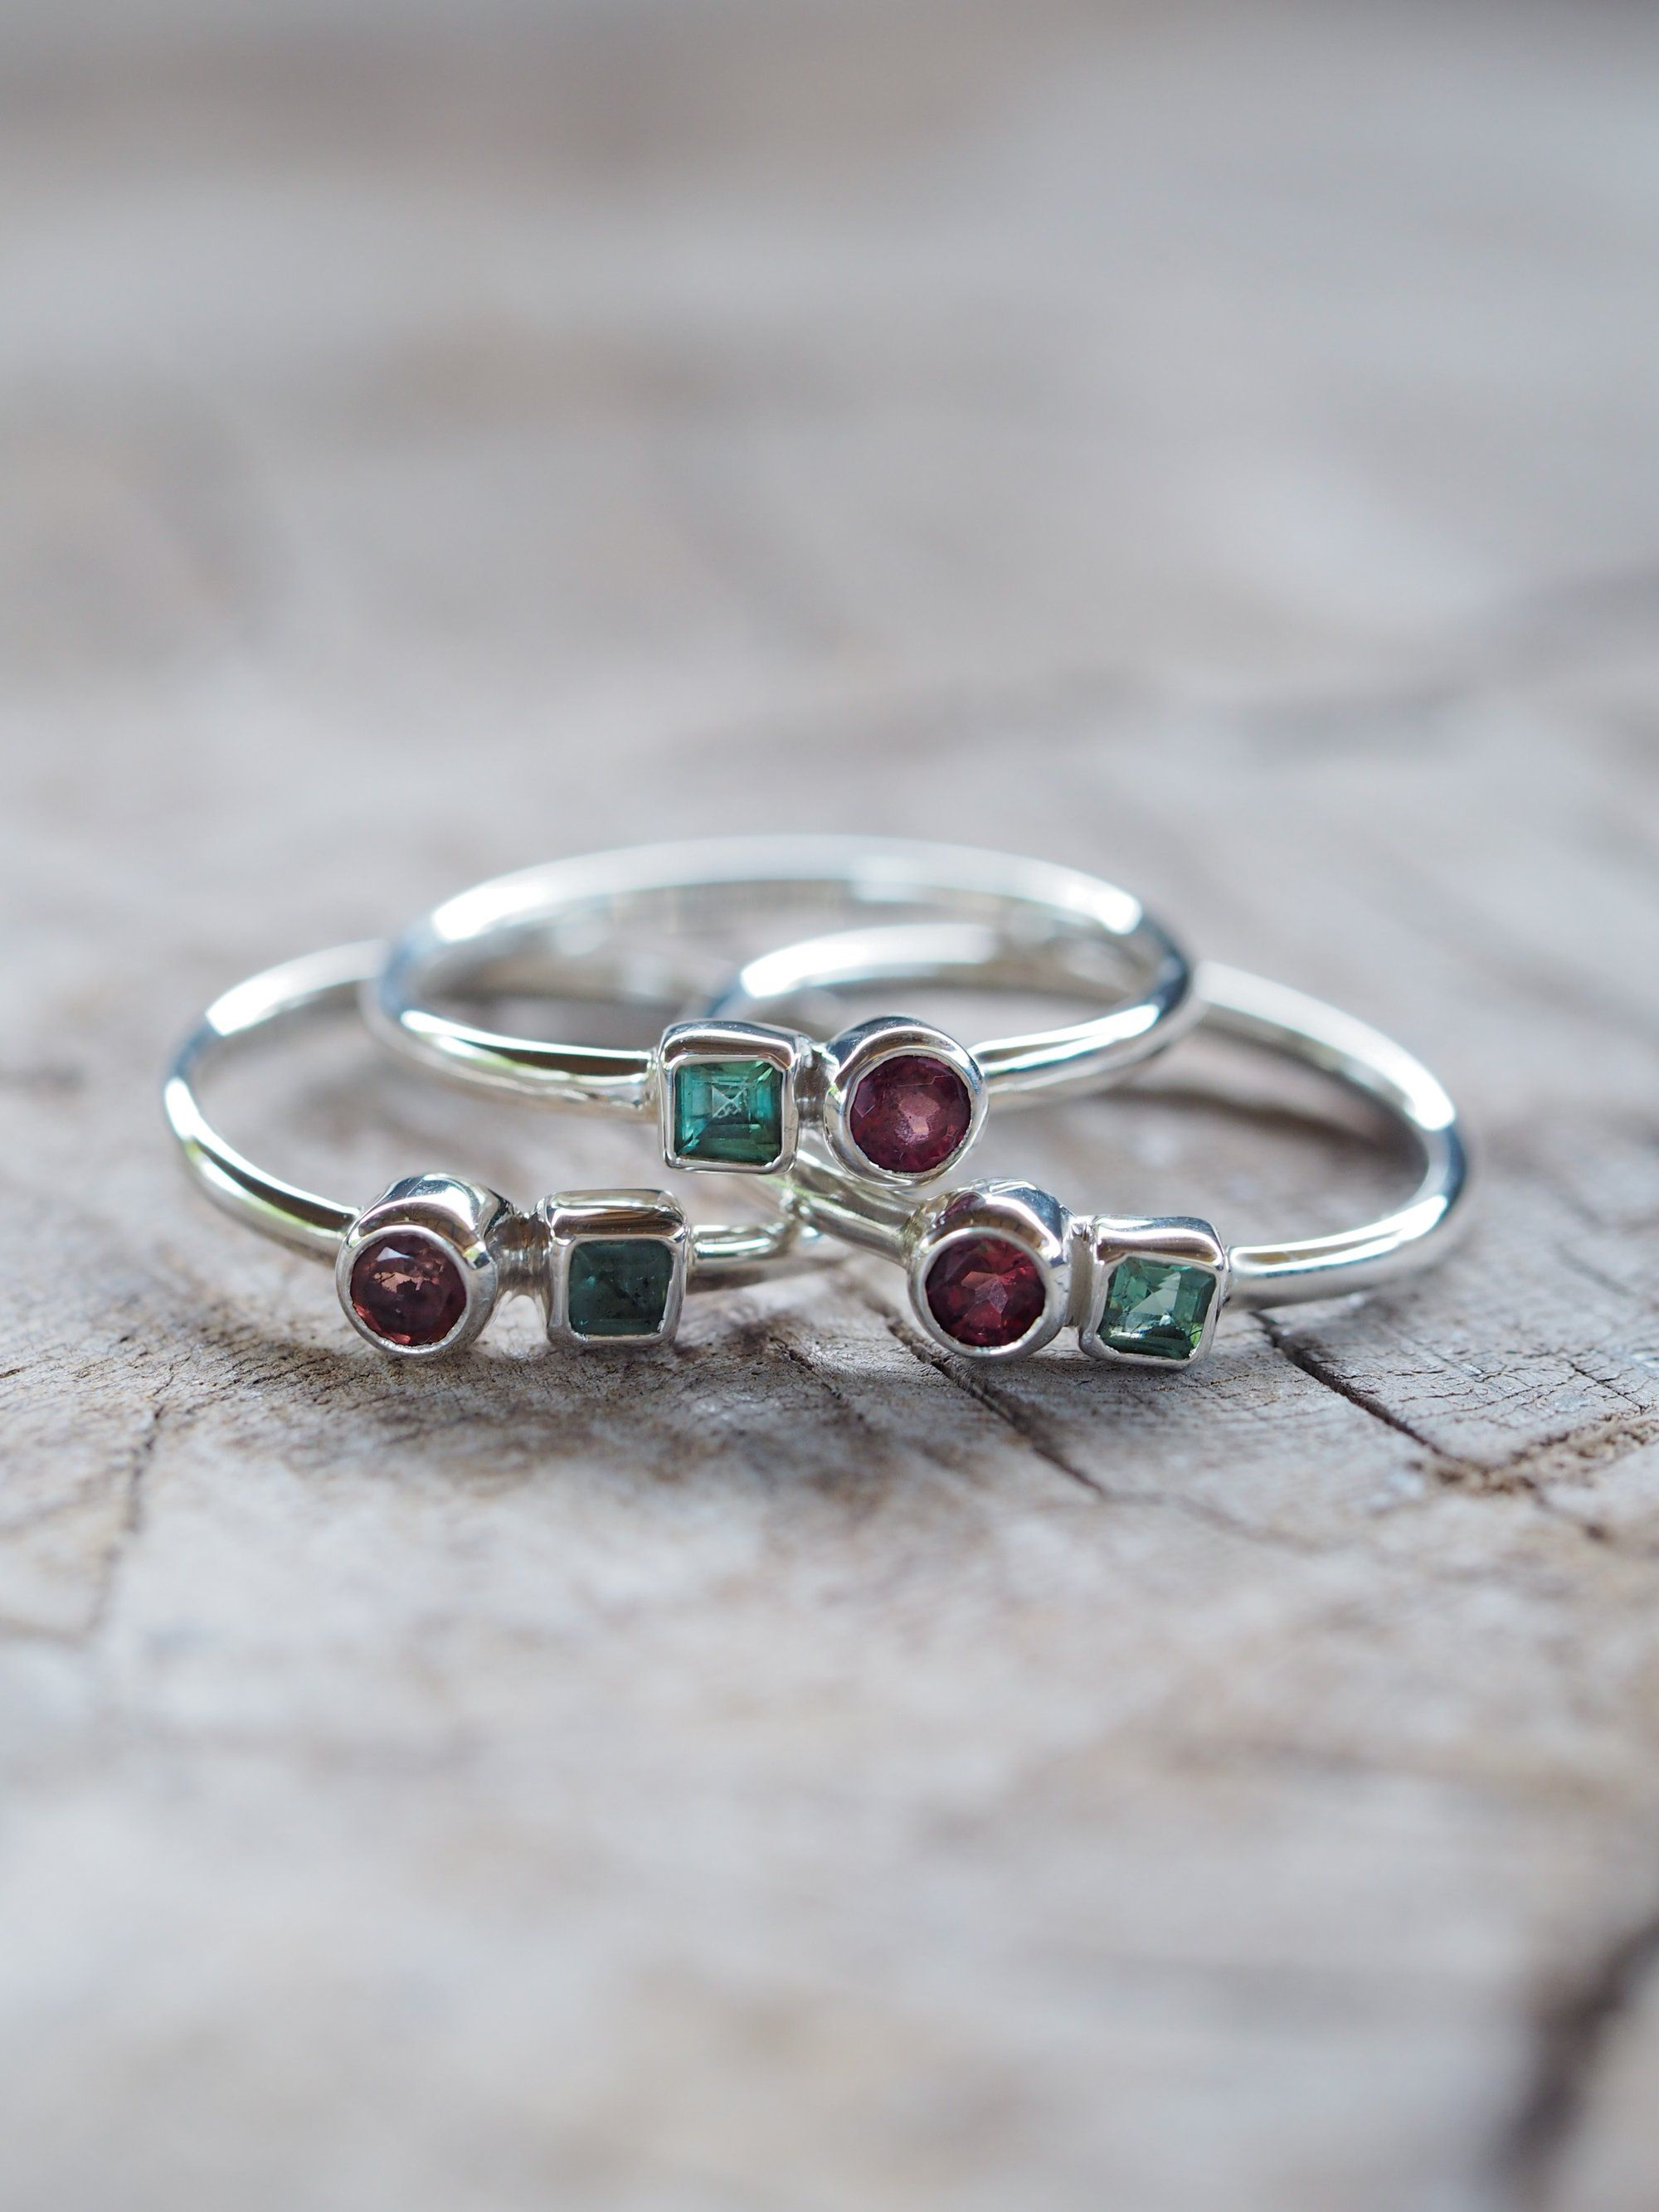 White Topaz Yellow Citrine Sterling Silver ring with Prong Set 6mm Green  Amethyst Garnet or Green Topaz Aquamarine